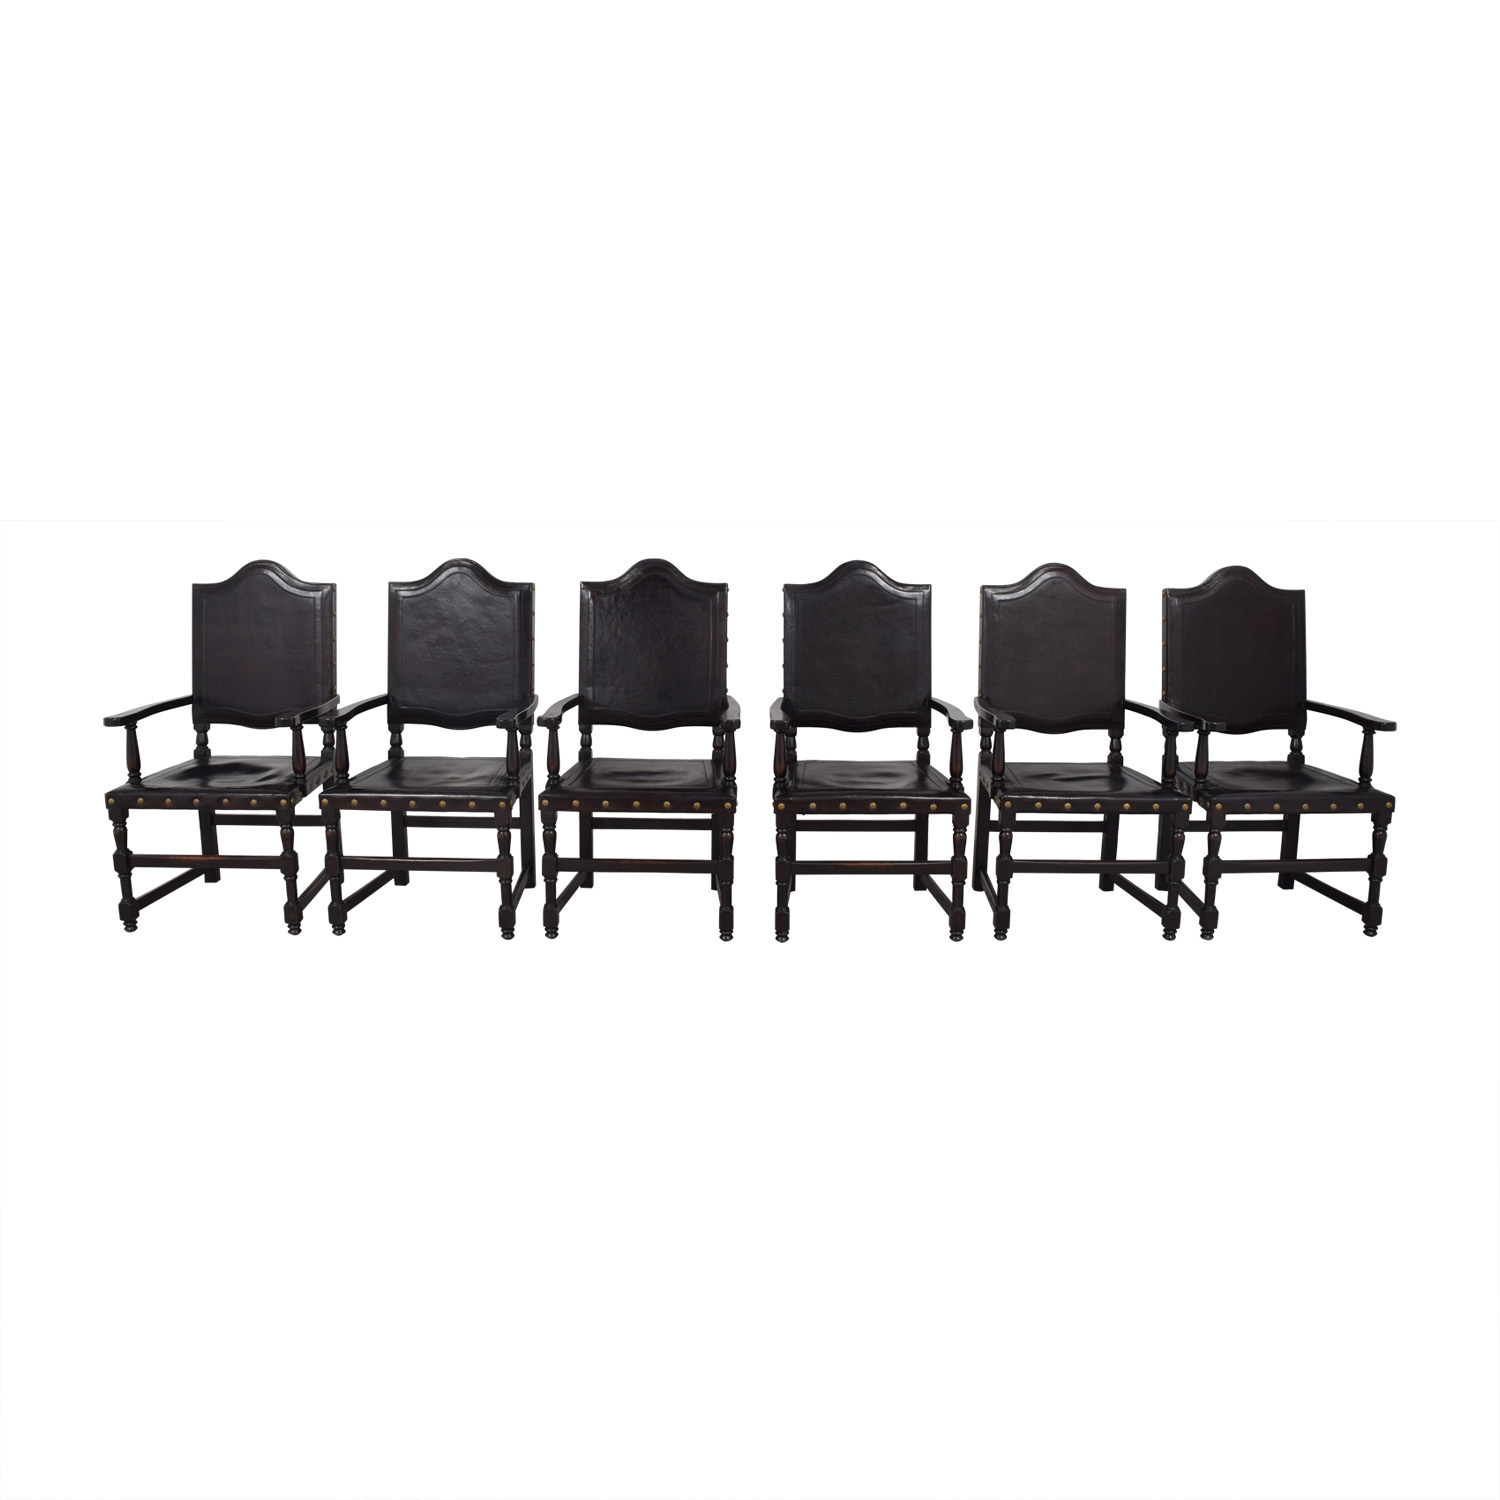 South Cone Furniture South Cone Furniture Dining Chairs discount